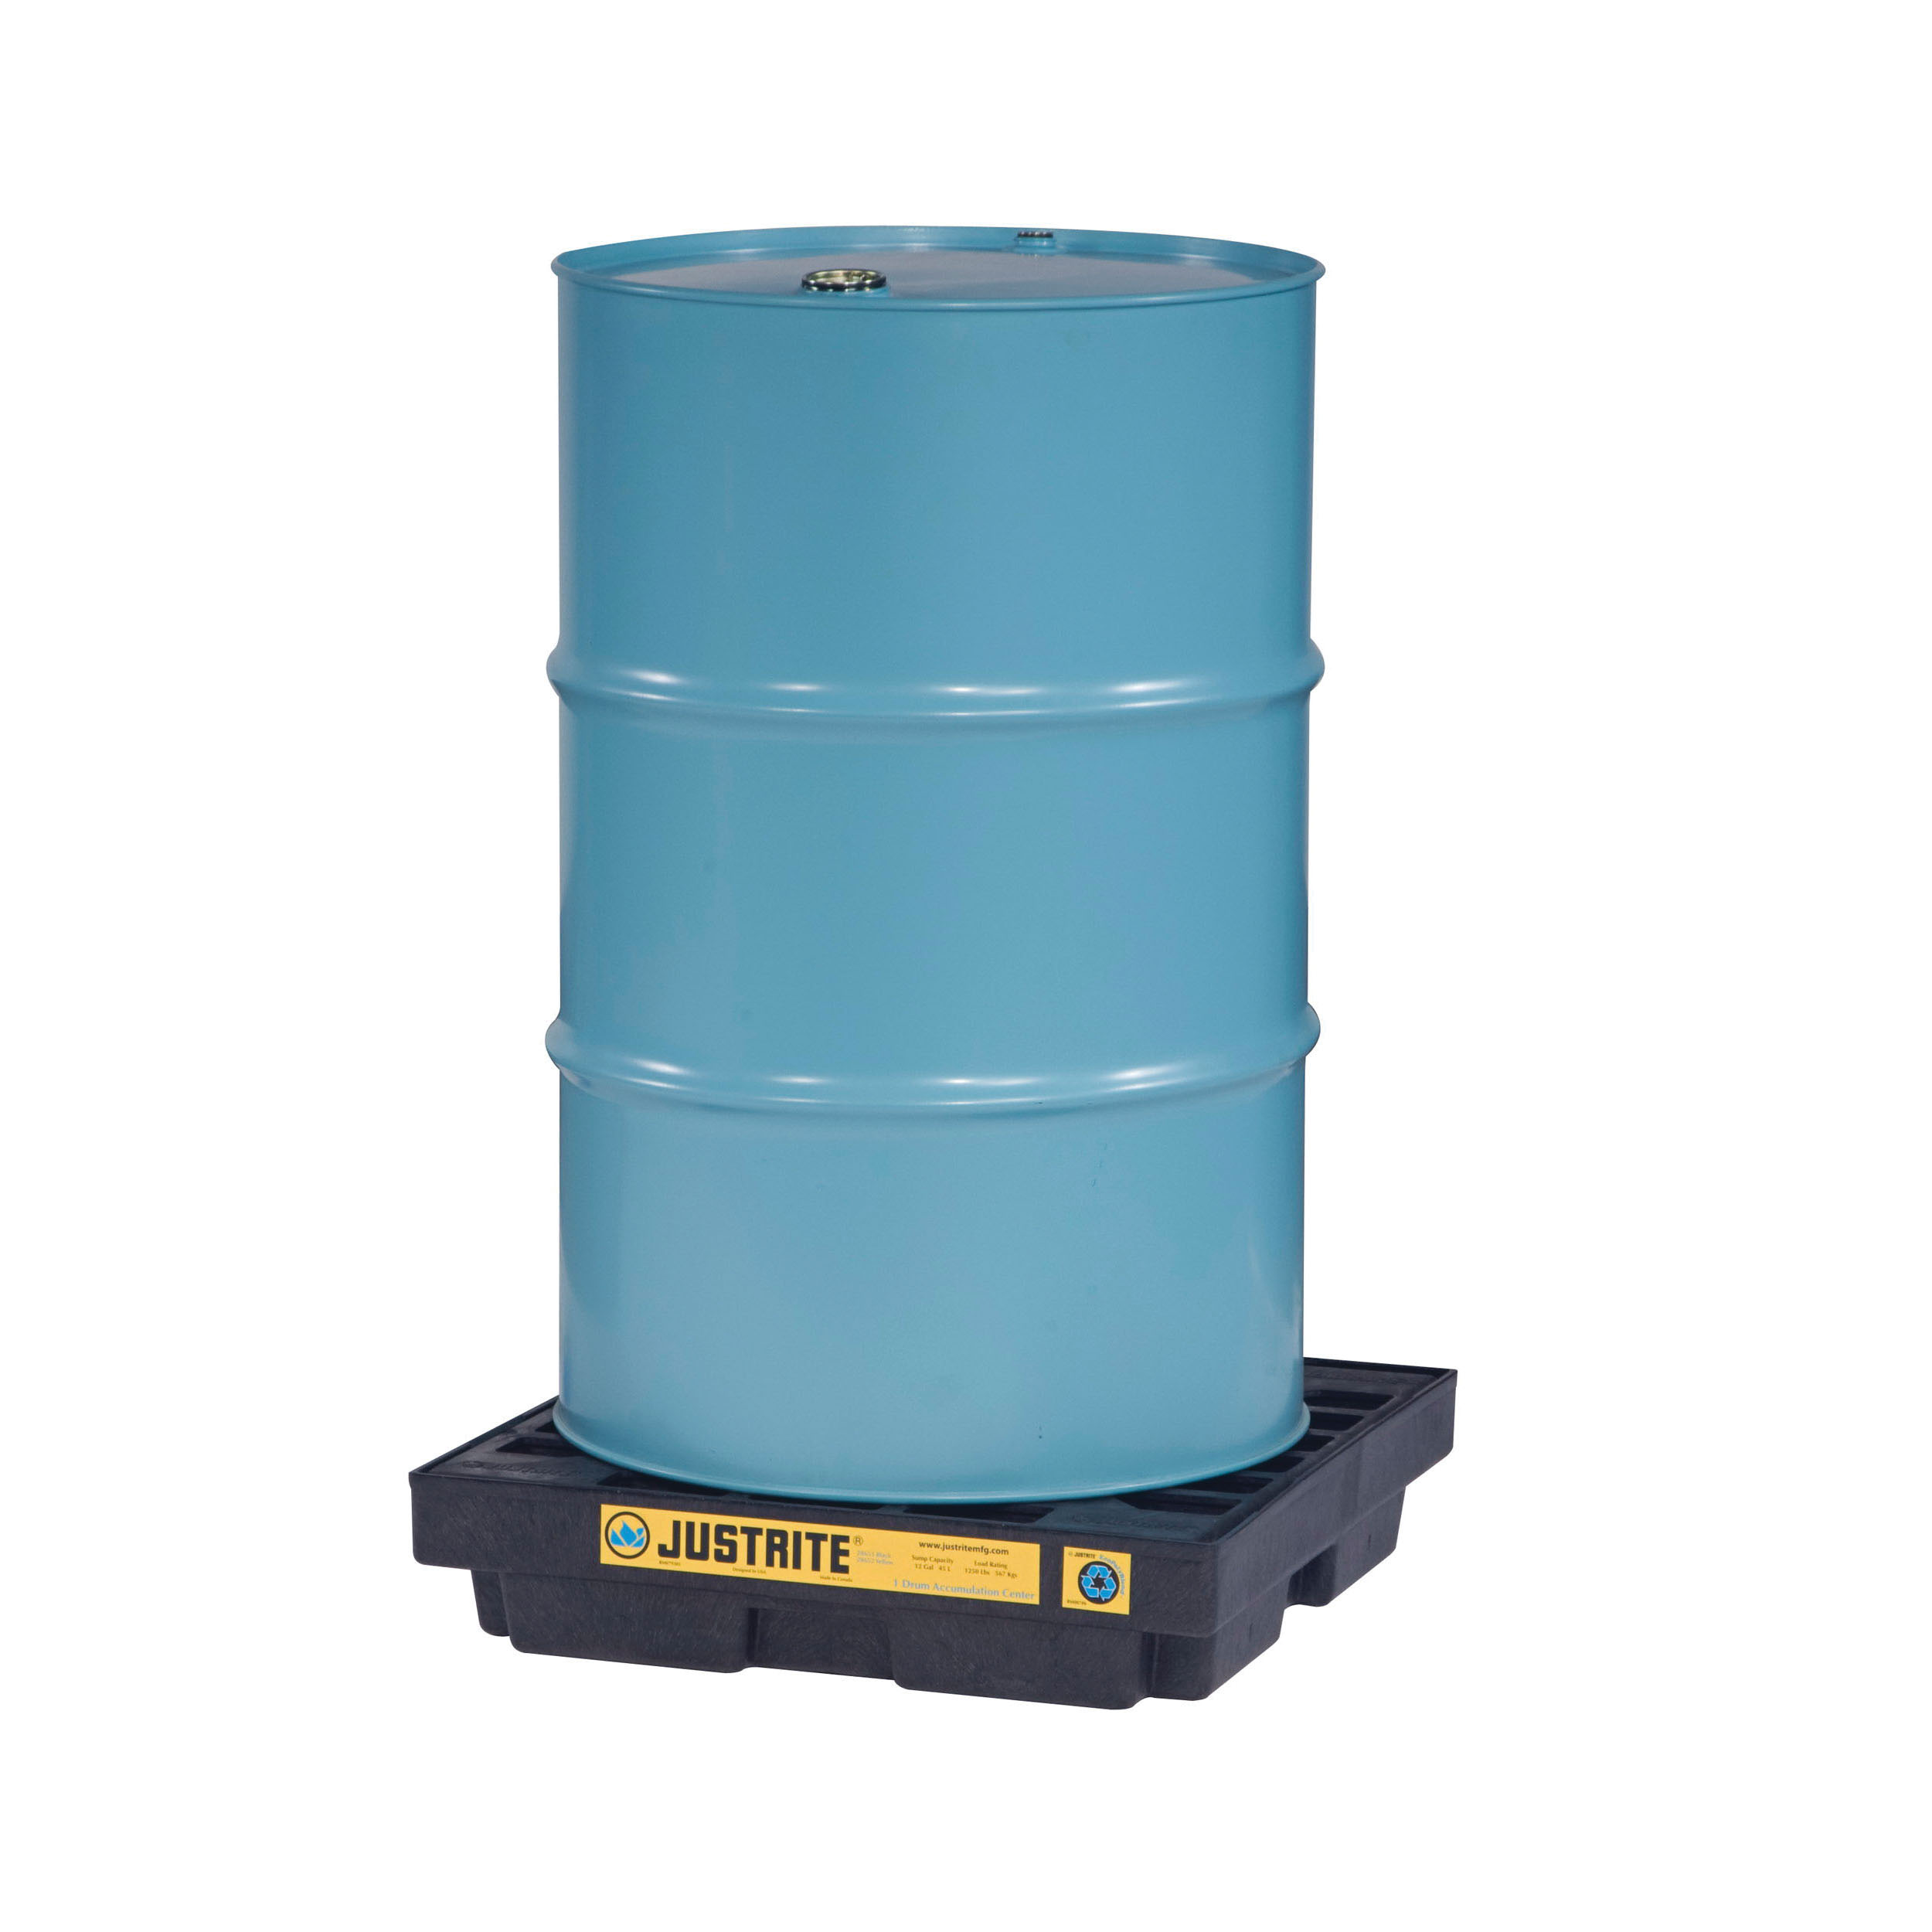 Justrite® 28653 EcoPolyBlend™ Accumulation Center, 1 Drums, 12 gal Spill, 1250 lb Load, 100% Recycled Polyethylene